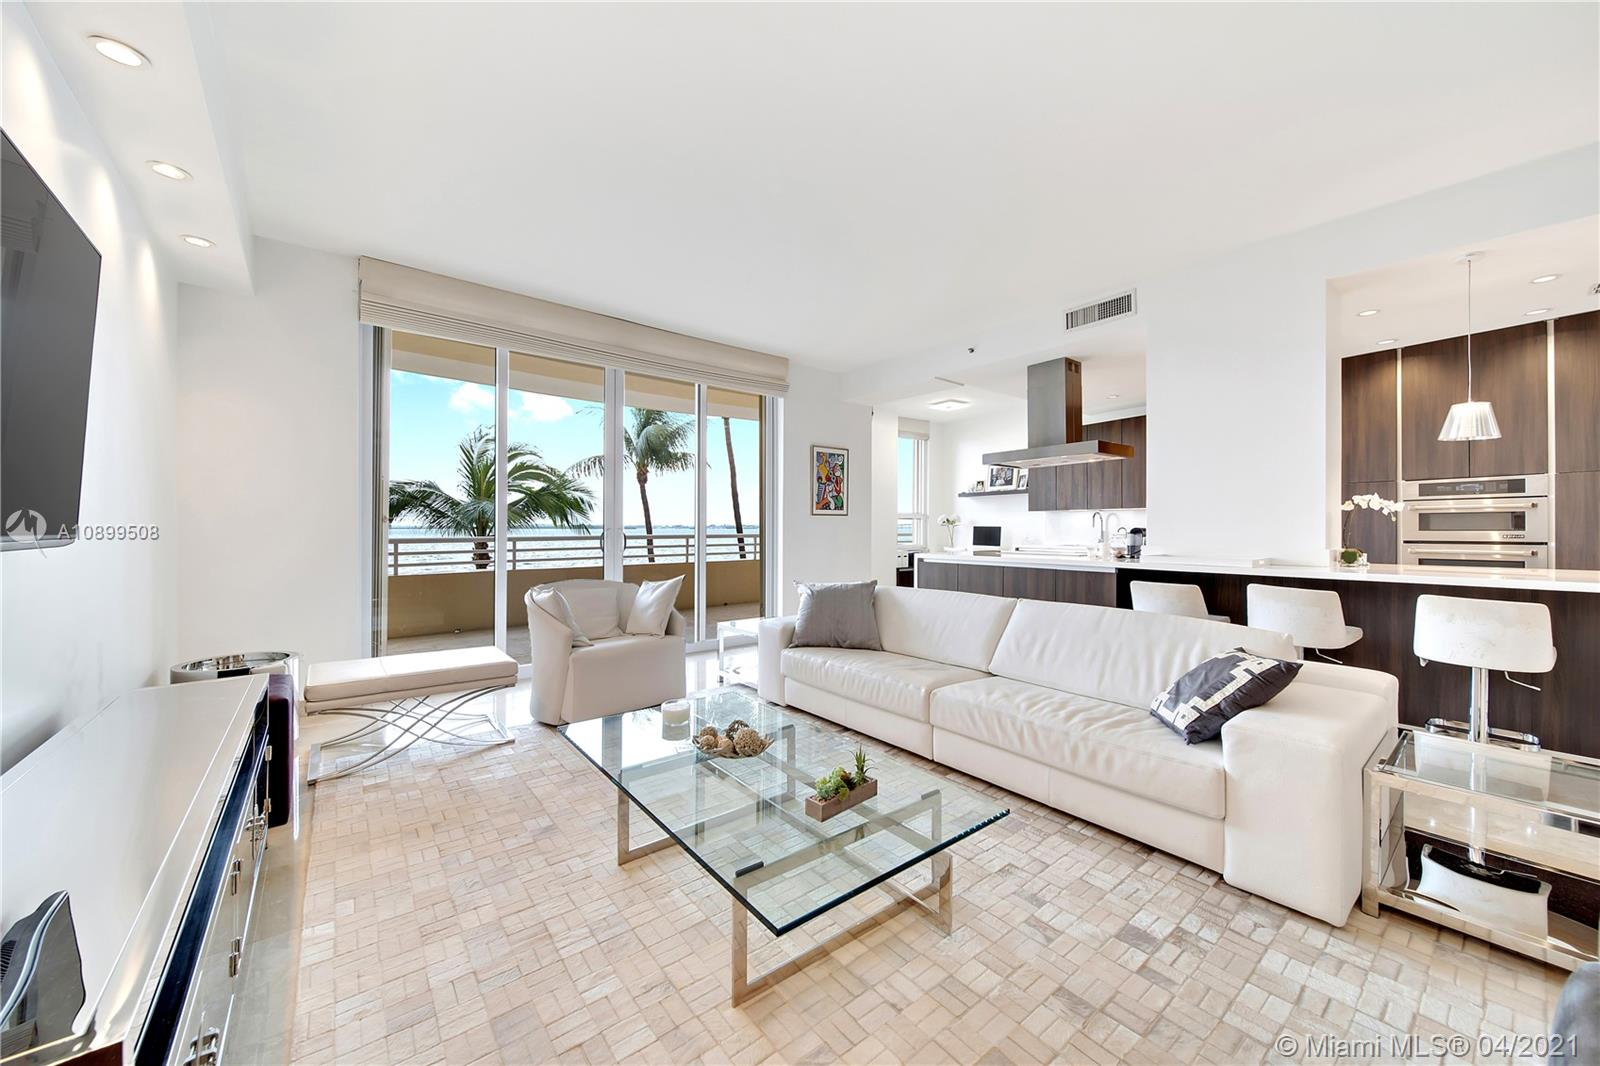 Enjoy the best lifestyle in the exclusive island of Brickell Key at the most iconic tower, Two Tequesta. This chic, modern and spacious unit is on the premium line, it's got breathtaking ocean views & it's been tastefully renovated in '17. Park on the 2nd floor & walk straight into your home, no elevators needed. It's like living in a house but with the security and amenities of a 5 stars resort. There's only 8 units per floor. It features, 2 parking spots, Jenn-Air and Sub-Zero appliances, all marble floors, impact windows, hurricane shutters, double entry doors, high ceilings, spectacular open kitchen, and a large storage room. The updated amenities include 2 top of the line bbqs, pool with enclosed cabanas, kids area, state of the art gym, racquetball and basketball courts & yoga room.